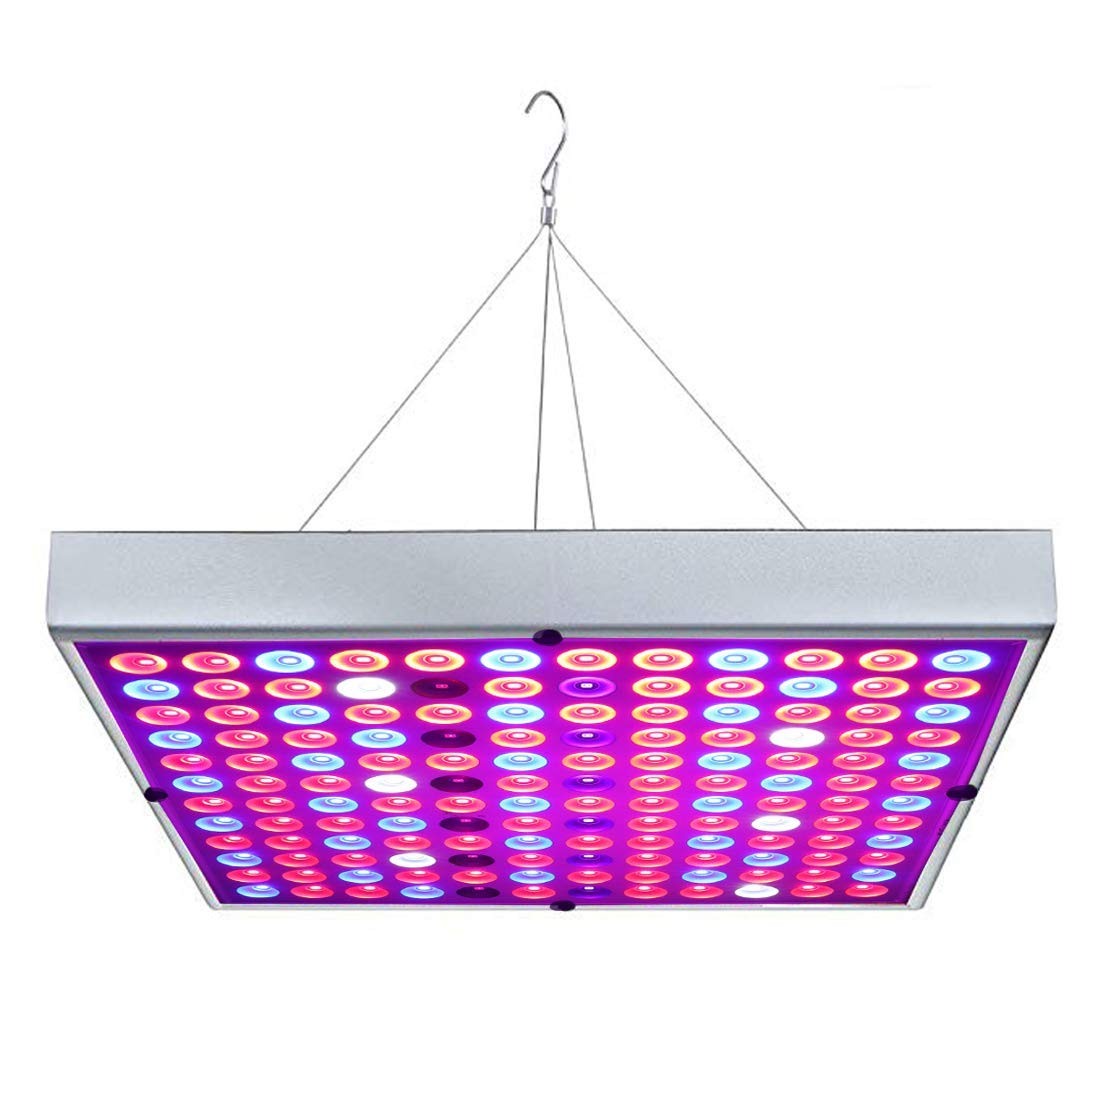 Juhefa LED Grow Light, 45W Panel Grow Lamp Full Spectrum with 6IR & 6UV LEDs for Indoor Plants,Micro Greens,Clones,Succulents,Seedlings,Flowers